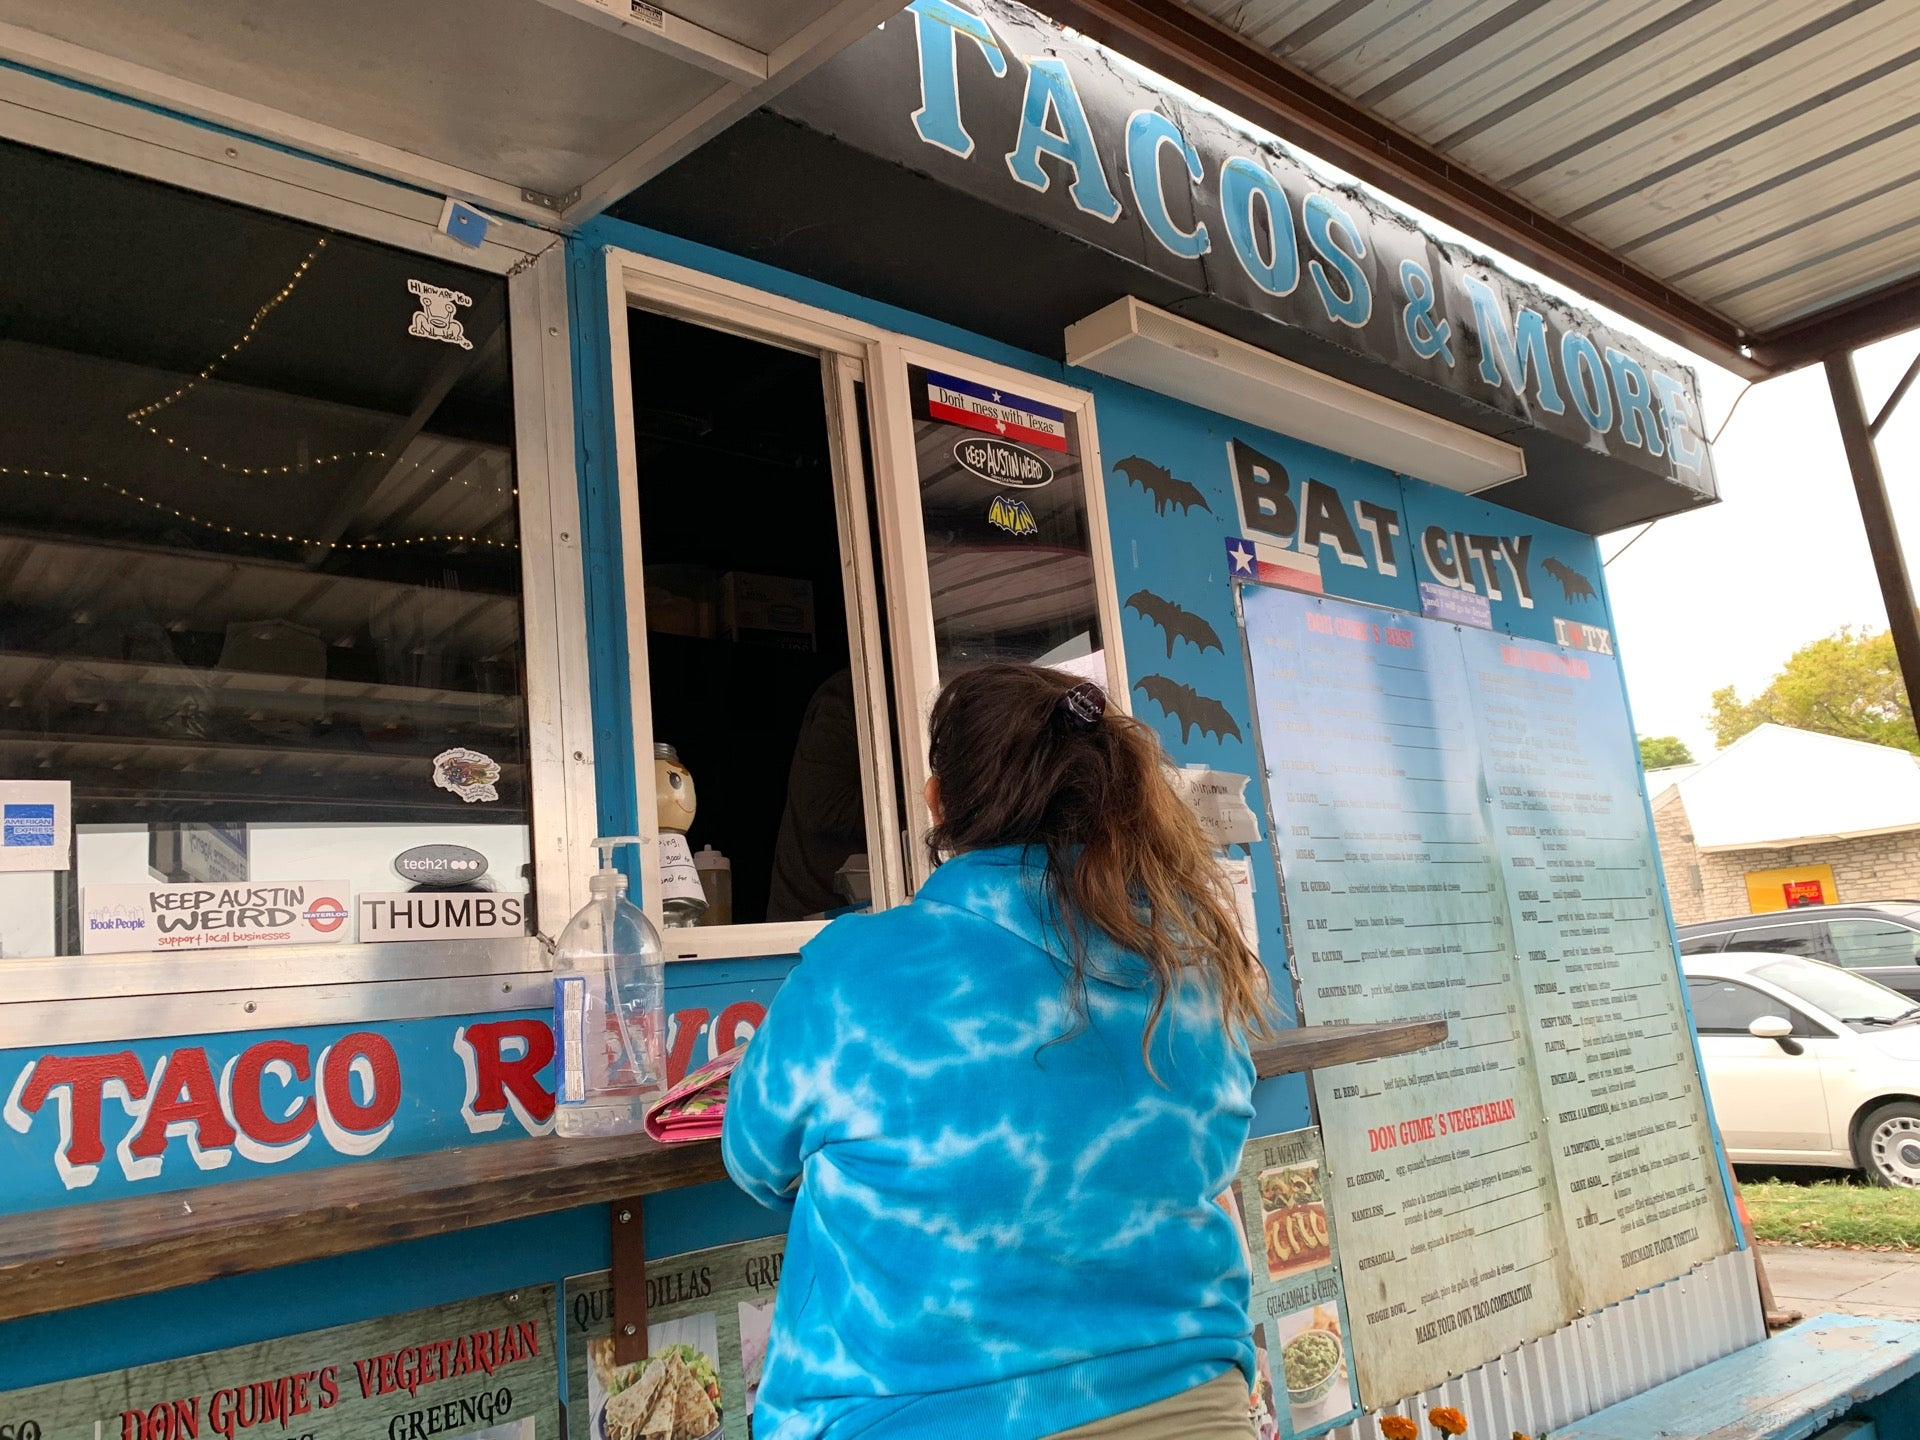 Checked in at Don Gume's Tacos & More